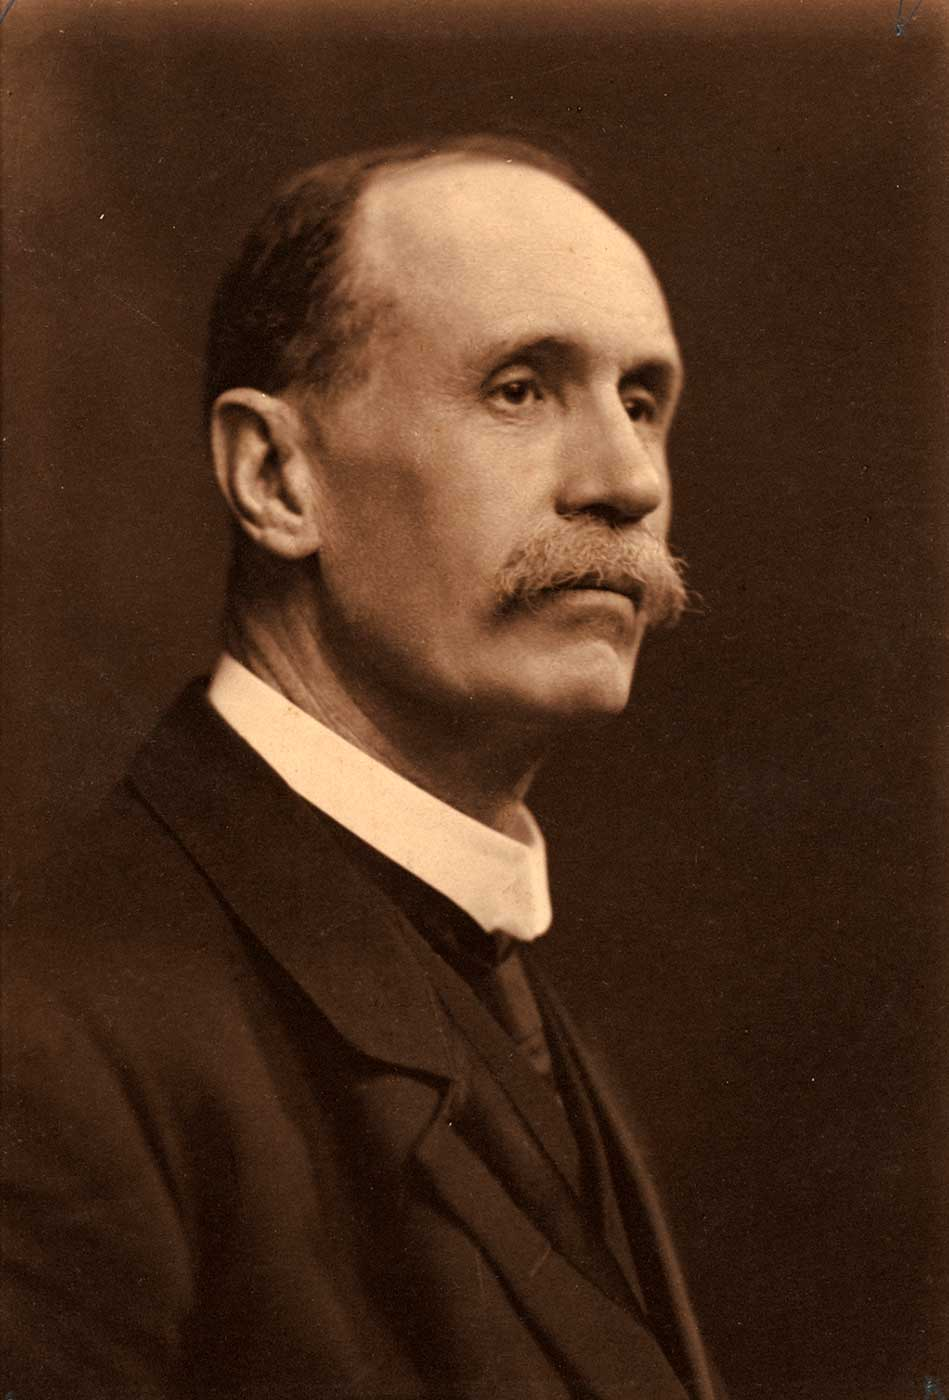 Photographic portrait of JHP Murray